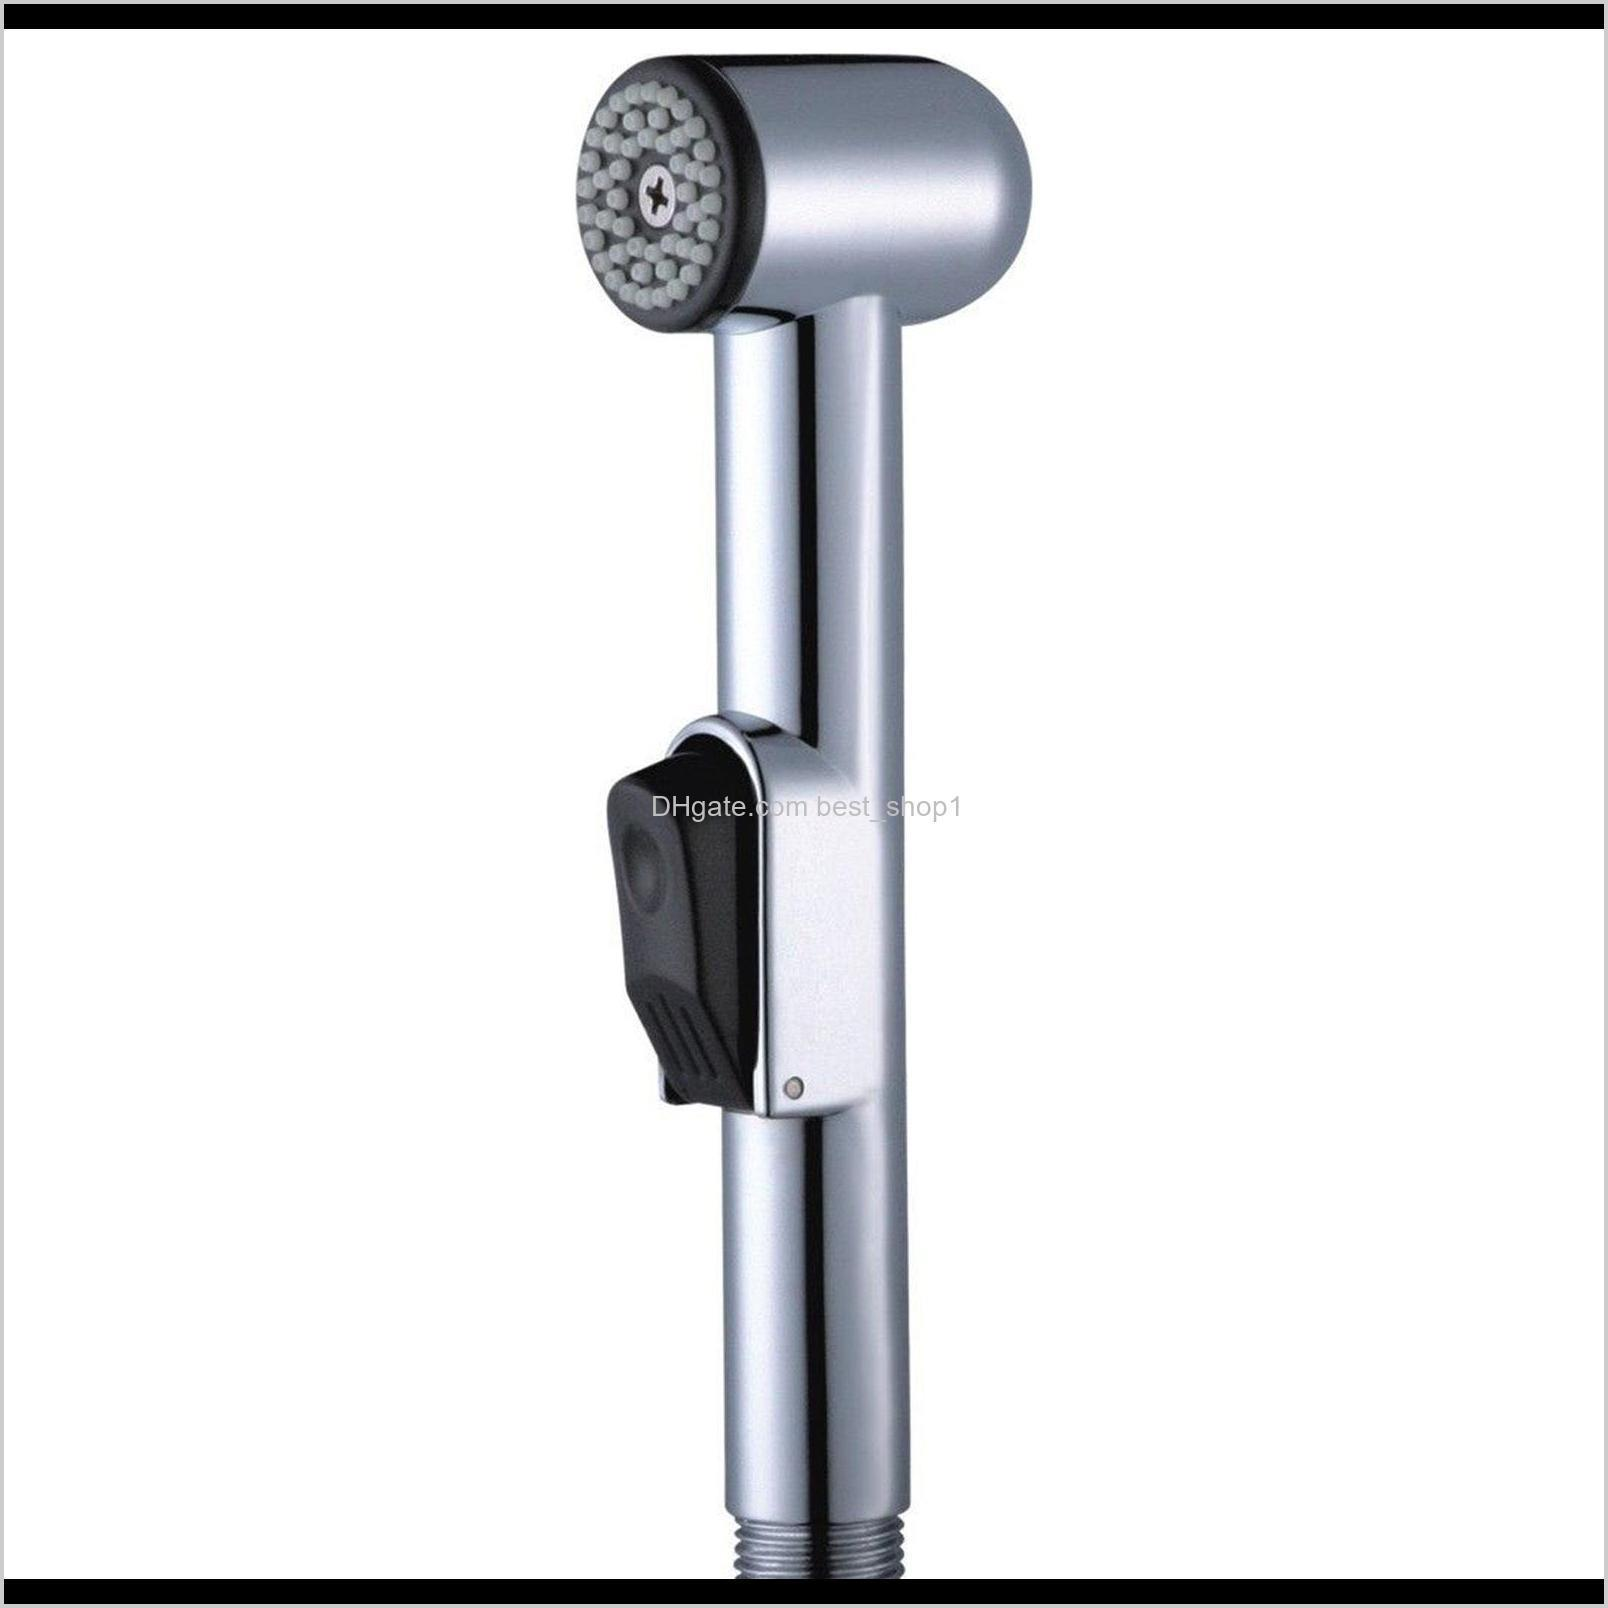 "Bathroom Toilet Abs Bidet Sprayer Single Head Hand Held Chrome Douche Shattaf Diaper Wash Spray Shower Nozzle G1/2"" Connect Size Iiub4 Okmn4"